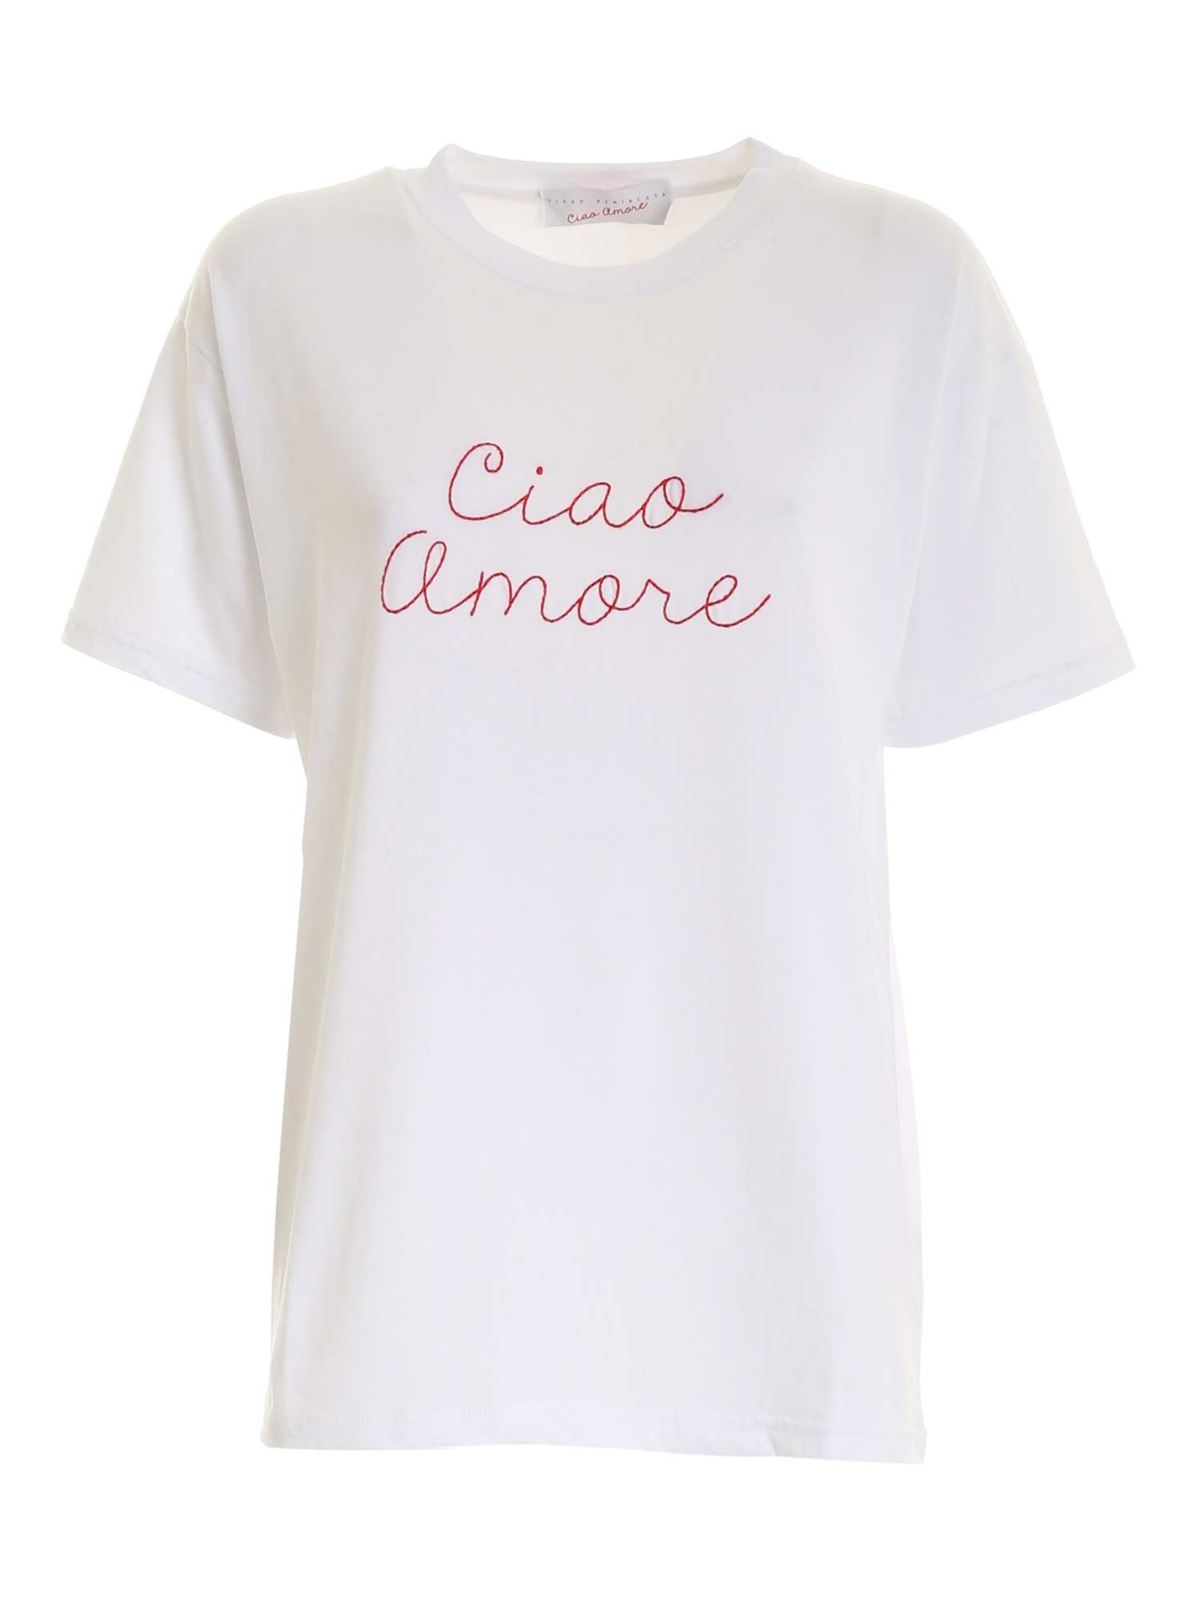 Giada Benincasa CONTRASTING EMBROIDERY T-SHIRT IN WHITE